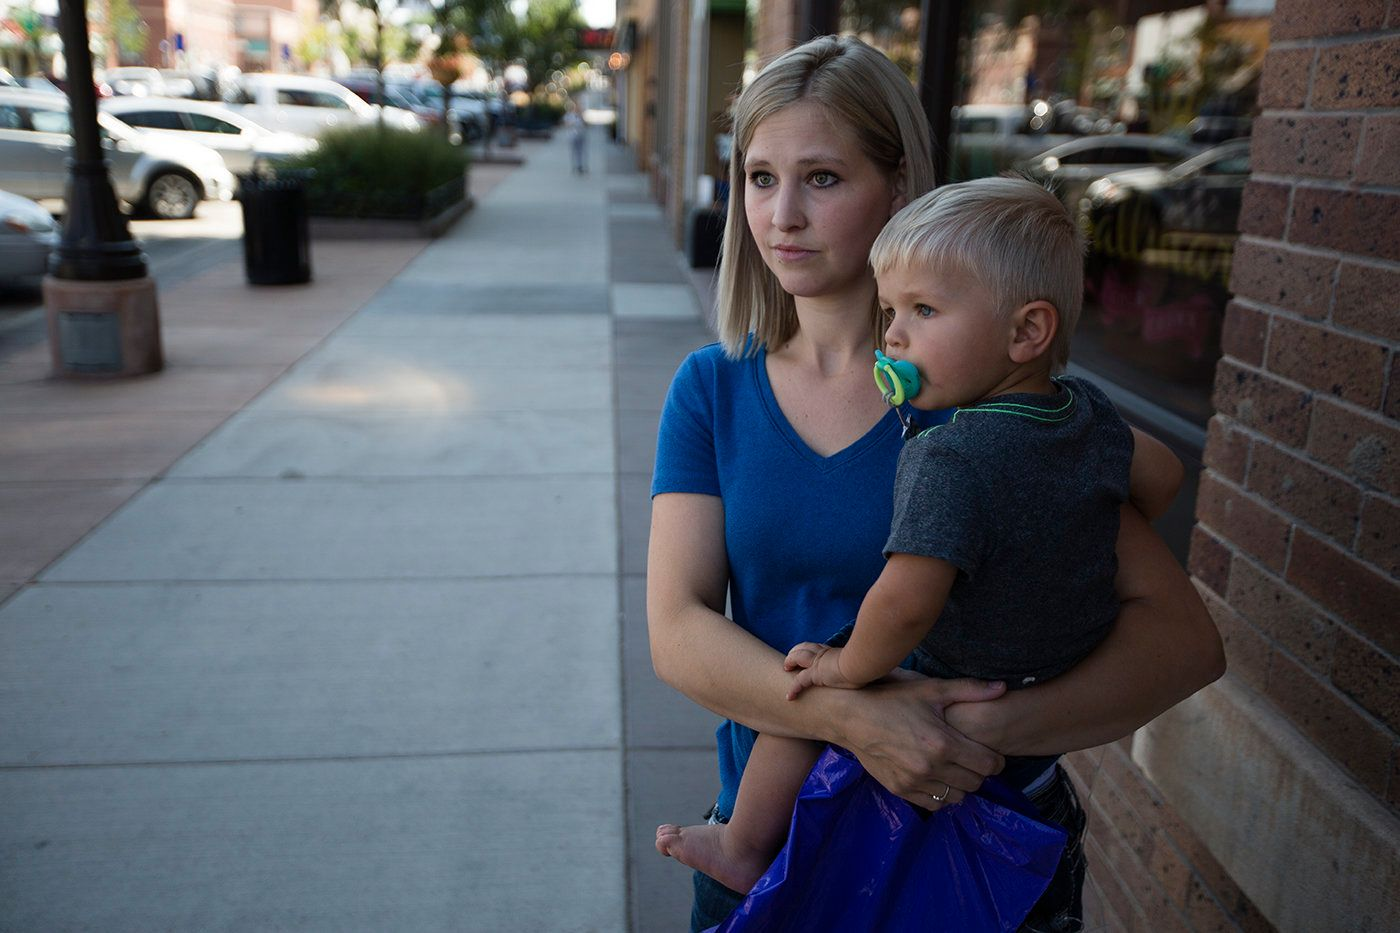 Marlayna Walker holds her 18-month-old son, Zeke, in downtown Gillette, Wyoming. While she has opinions on hot-button social